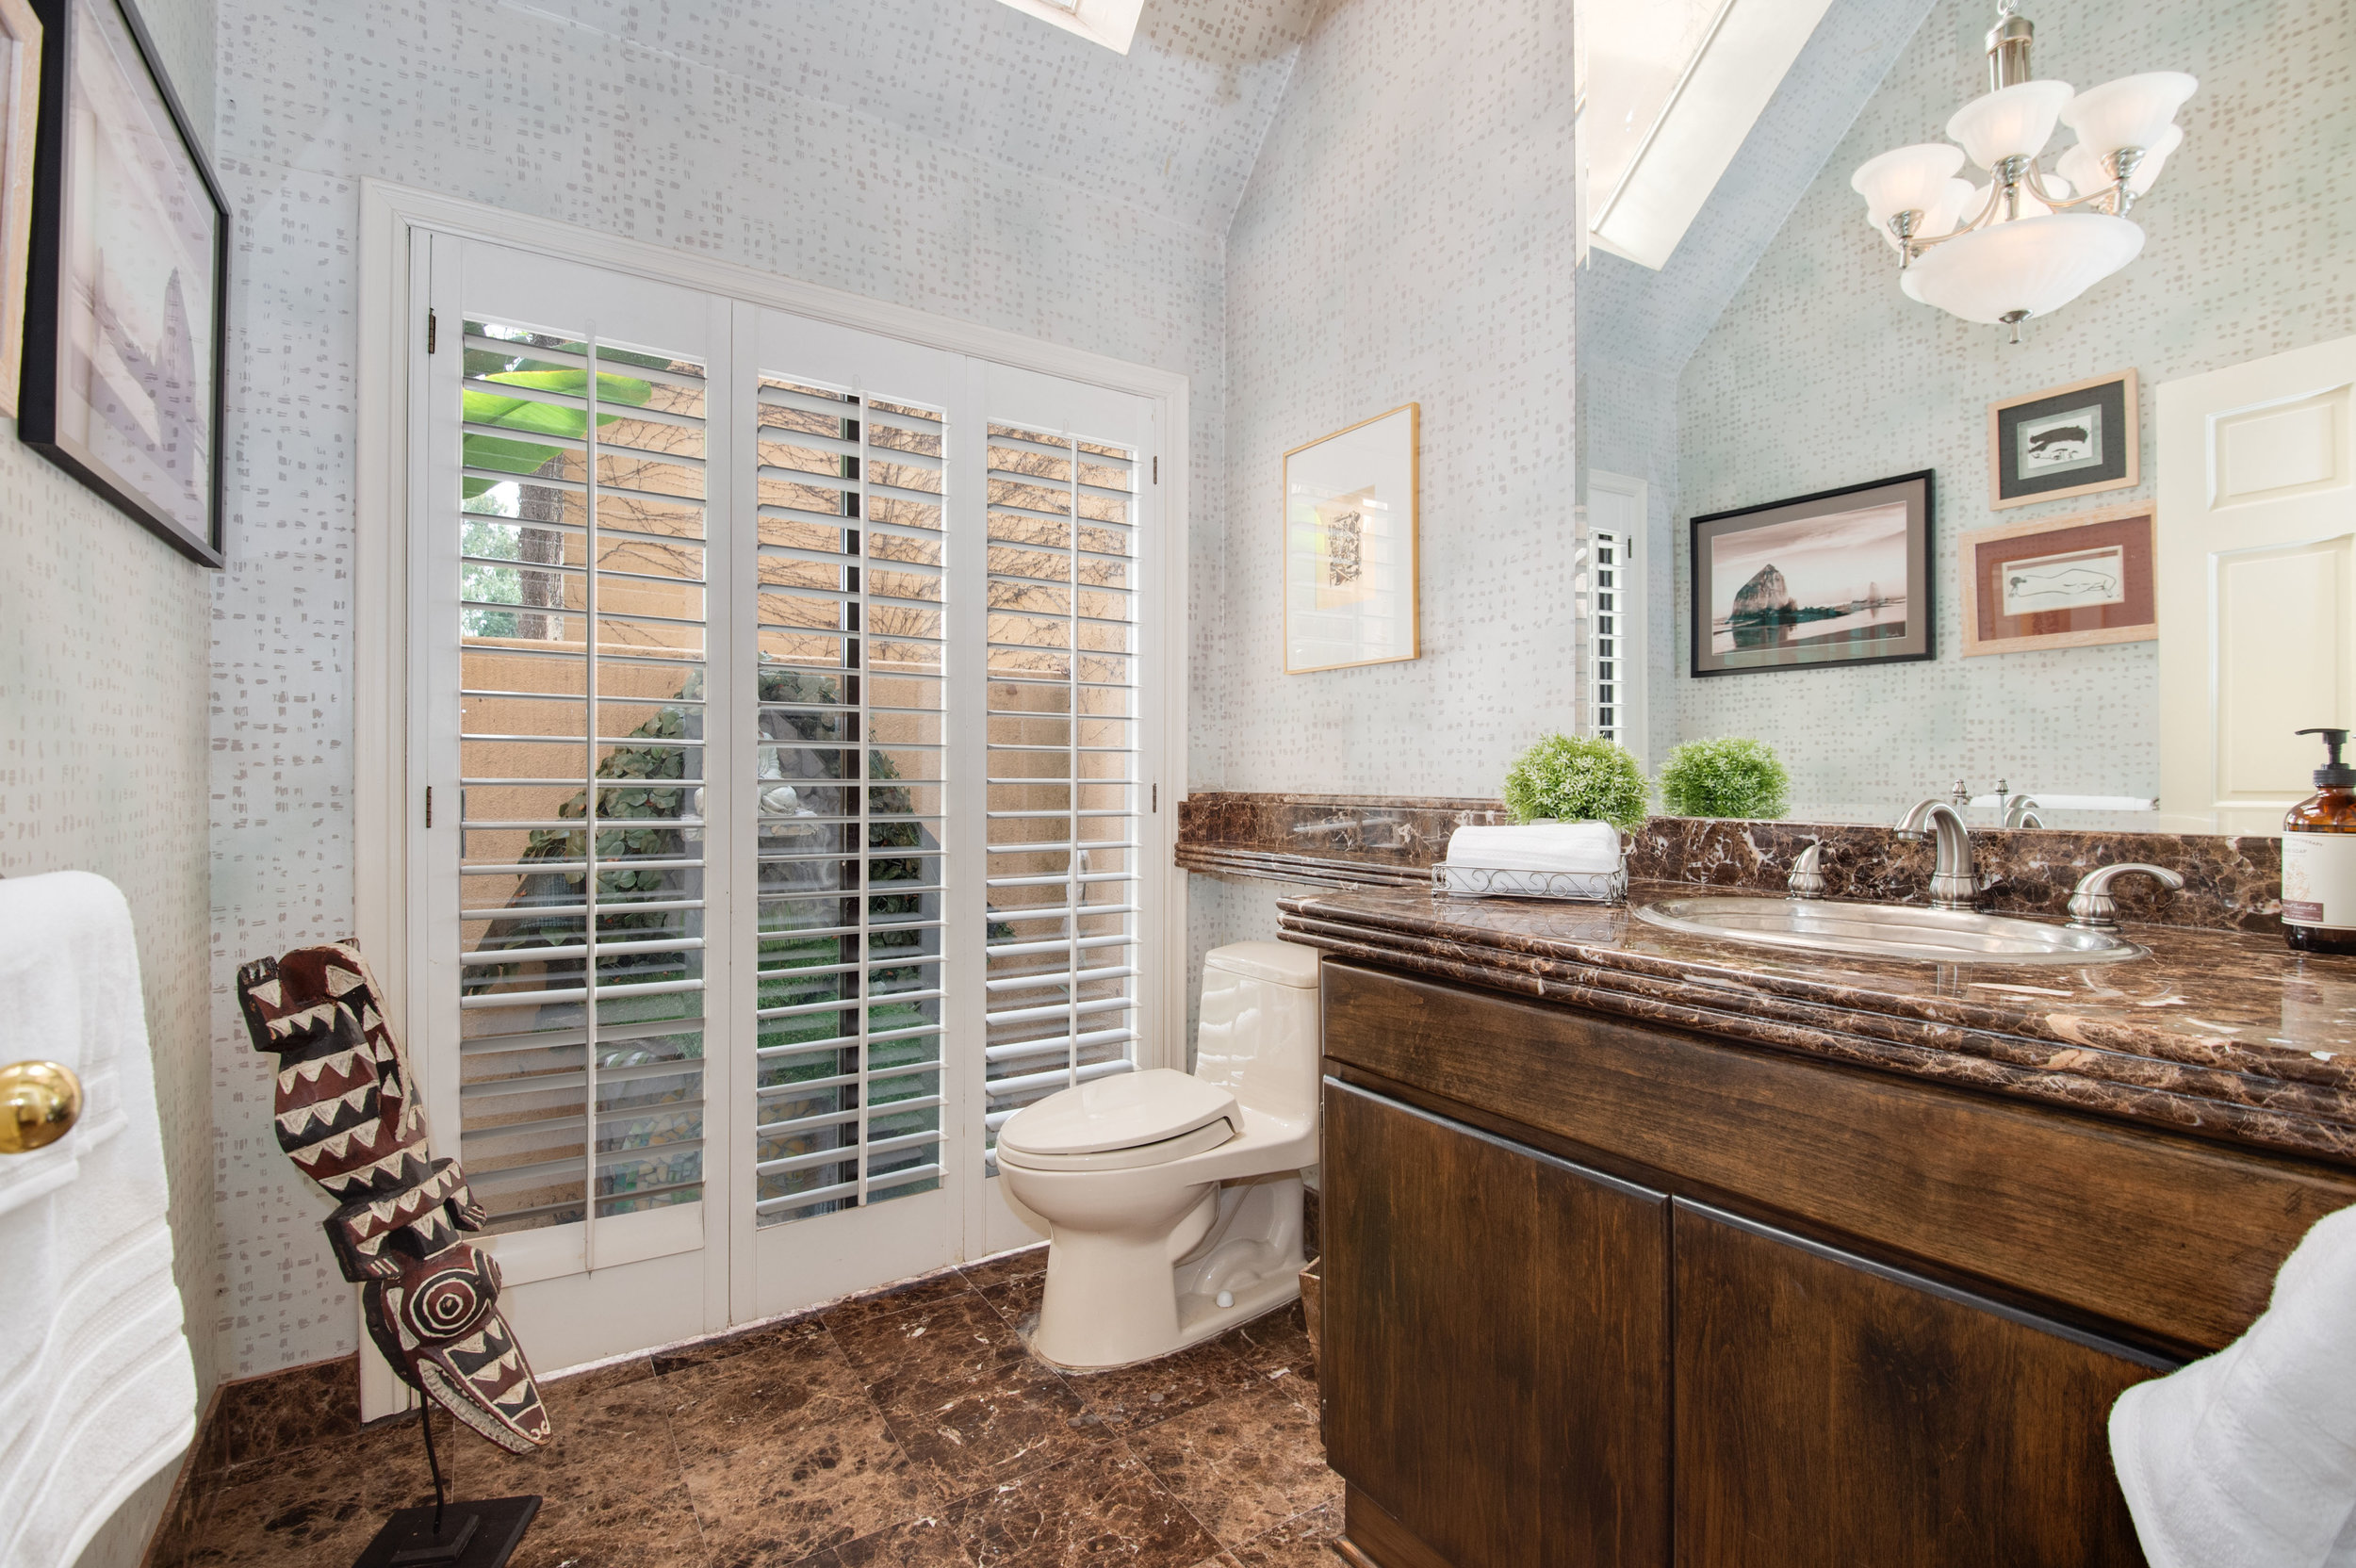 022 Bathroom 12027 Talus Place Beverly Hills 90210 For Sale Lease The Malibu Life Team Luxury Real Estate.jpg